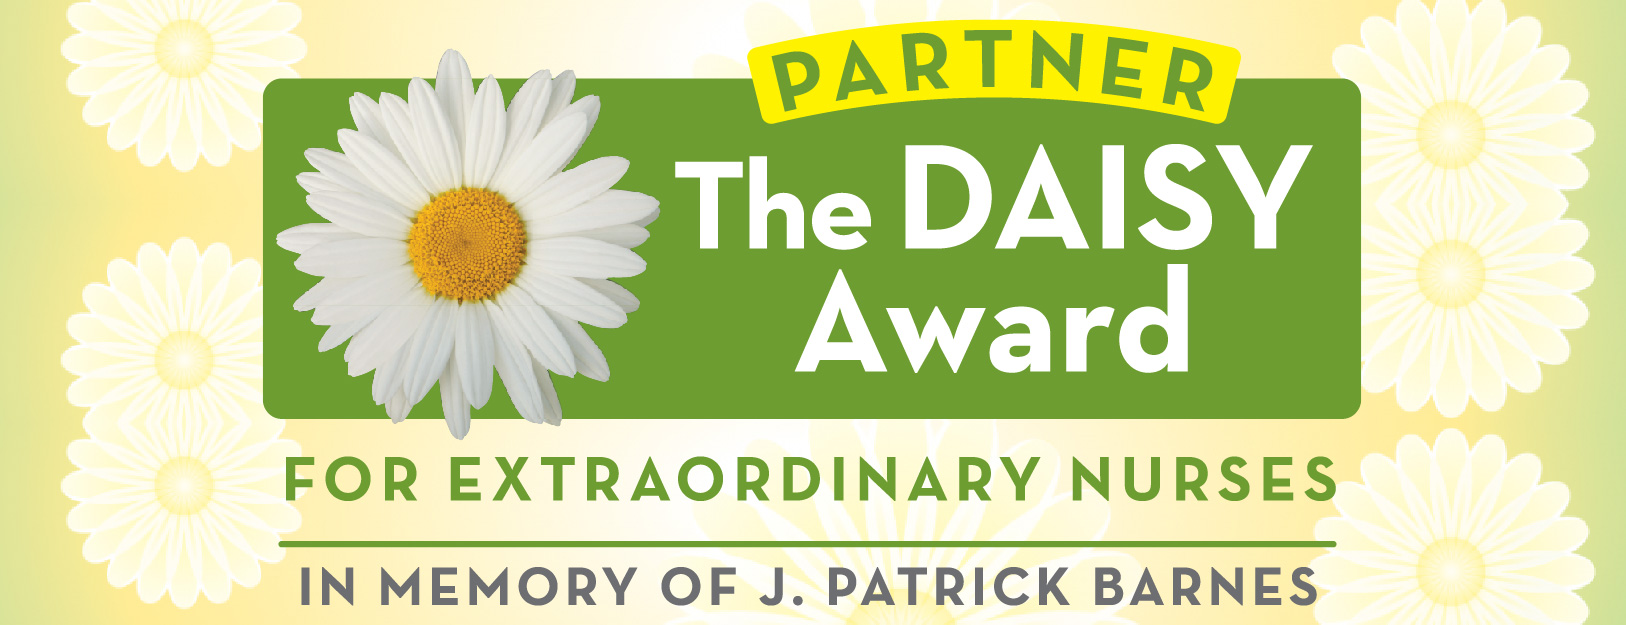 ARJ Infusion Services Partners with The DAISY Foundation for The DAISY Award.